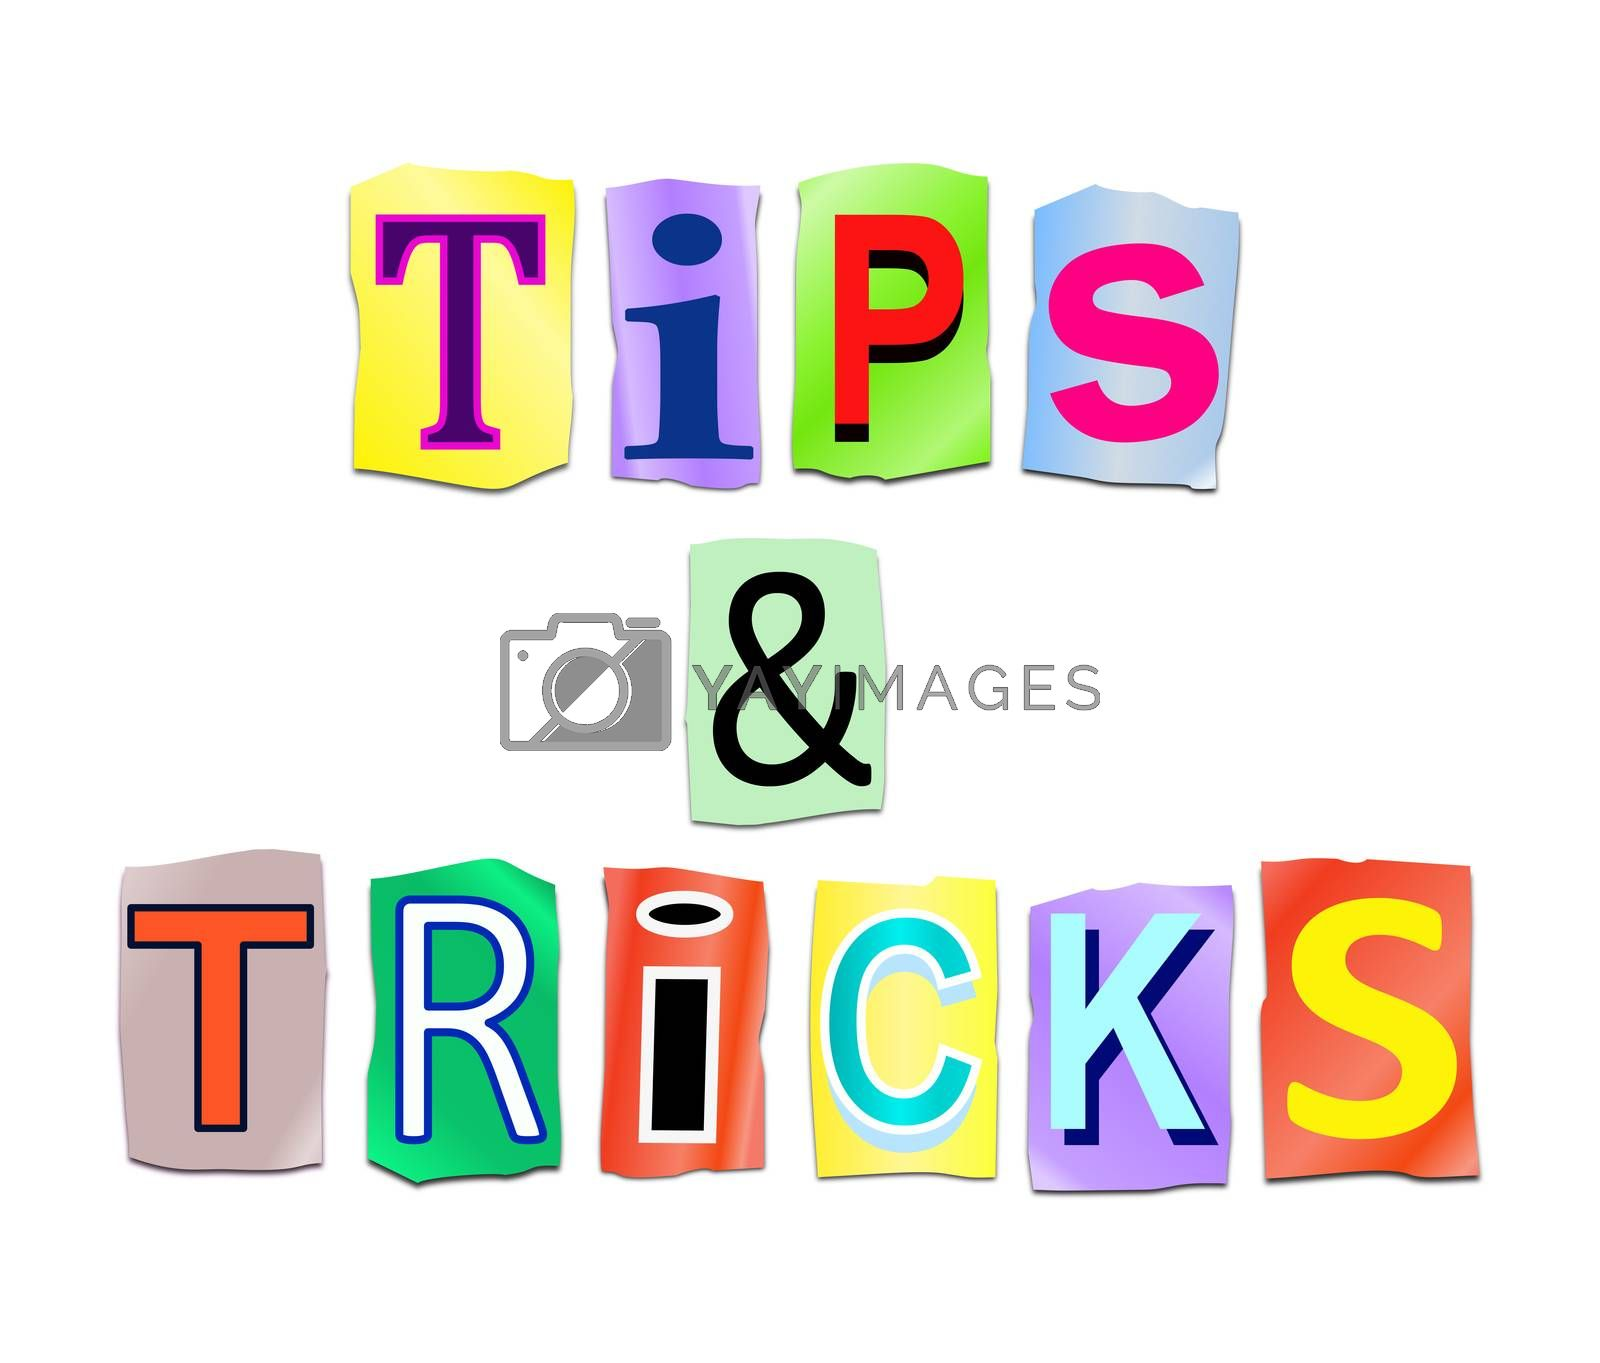 Illustration depicting a set of cut out printed letters arranged to form the words tips and tricks.